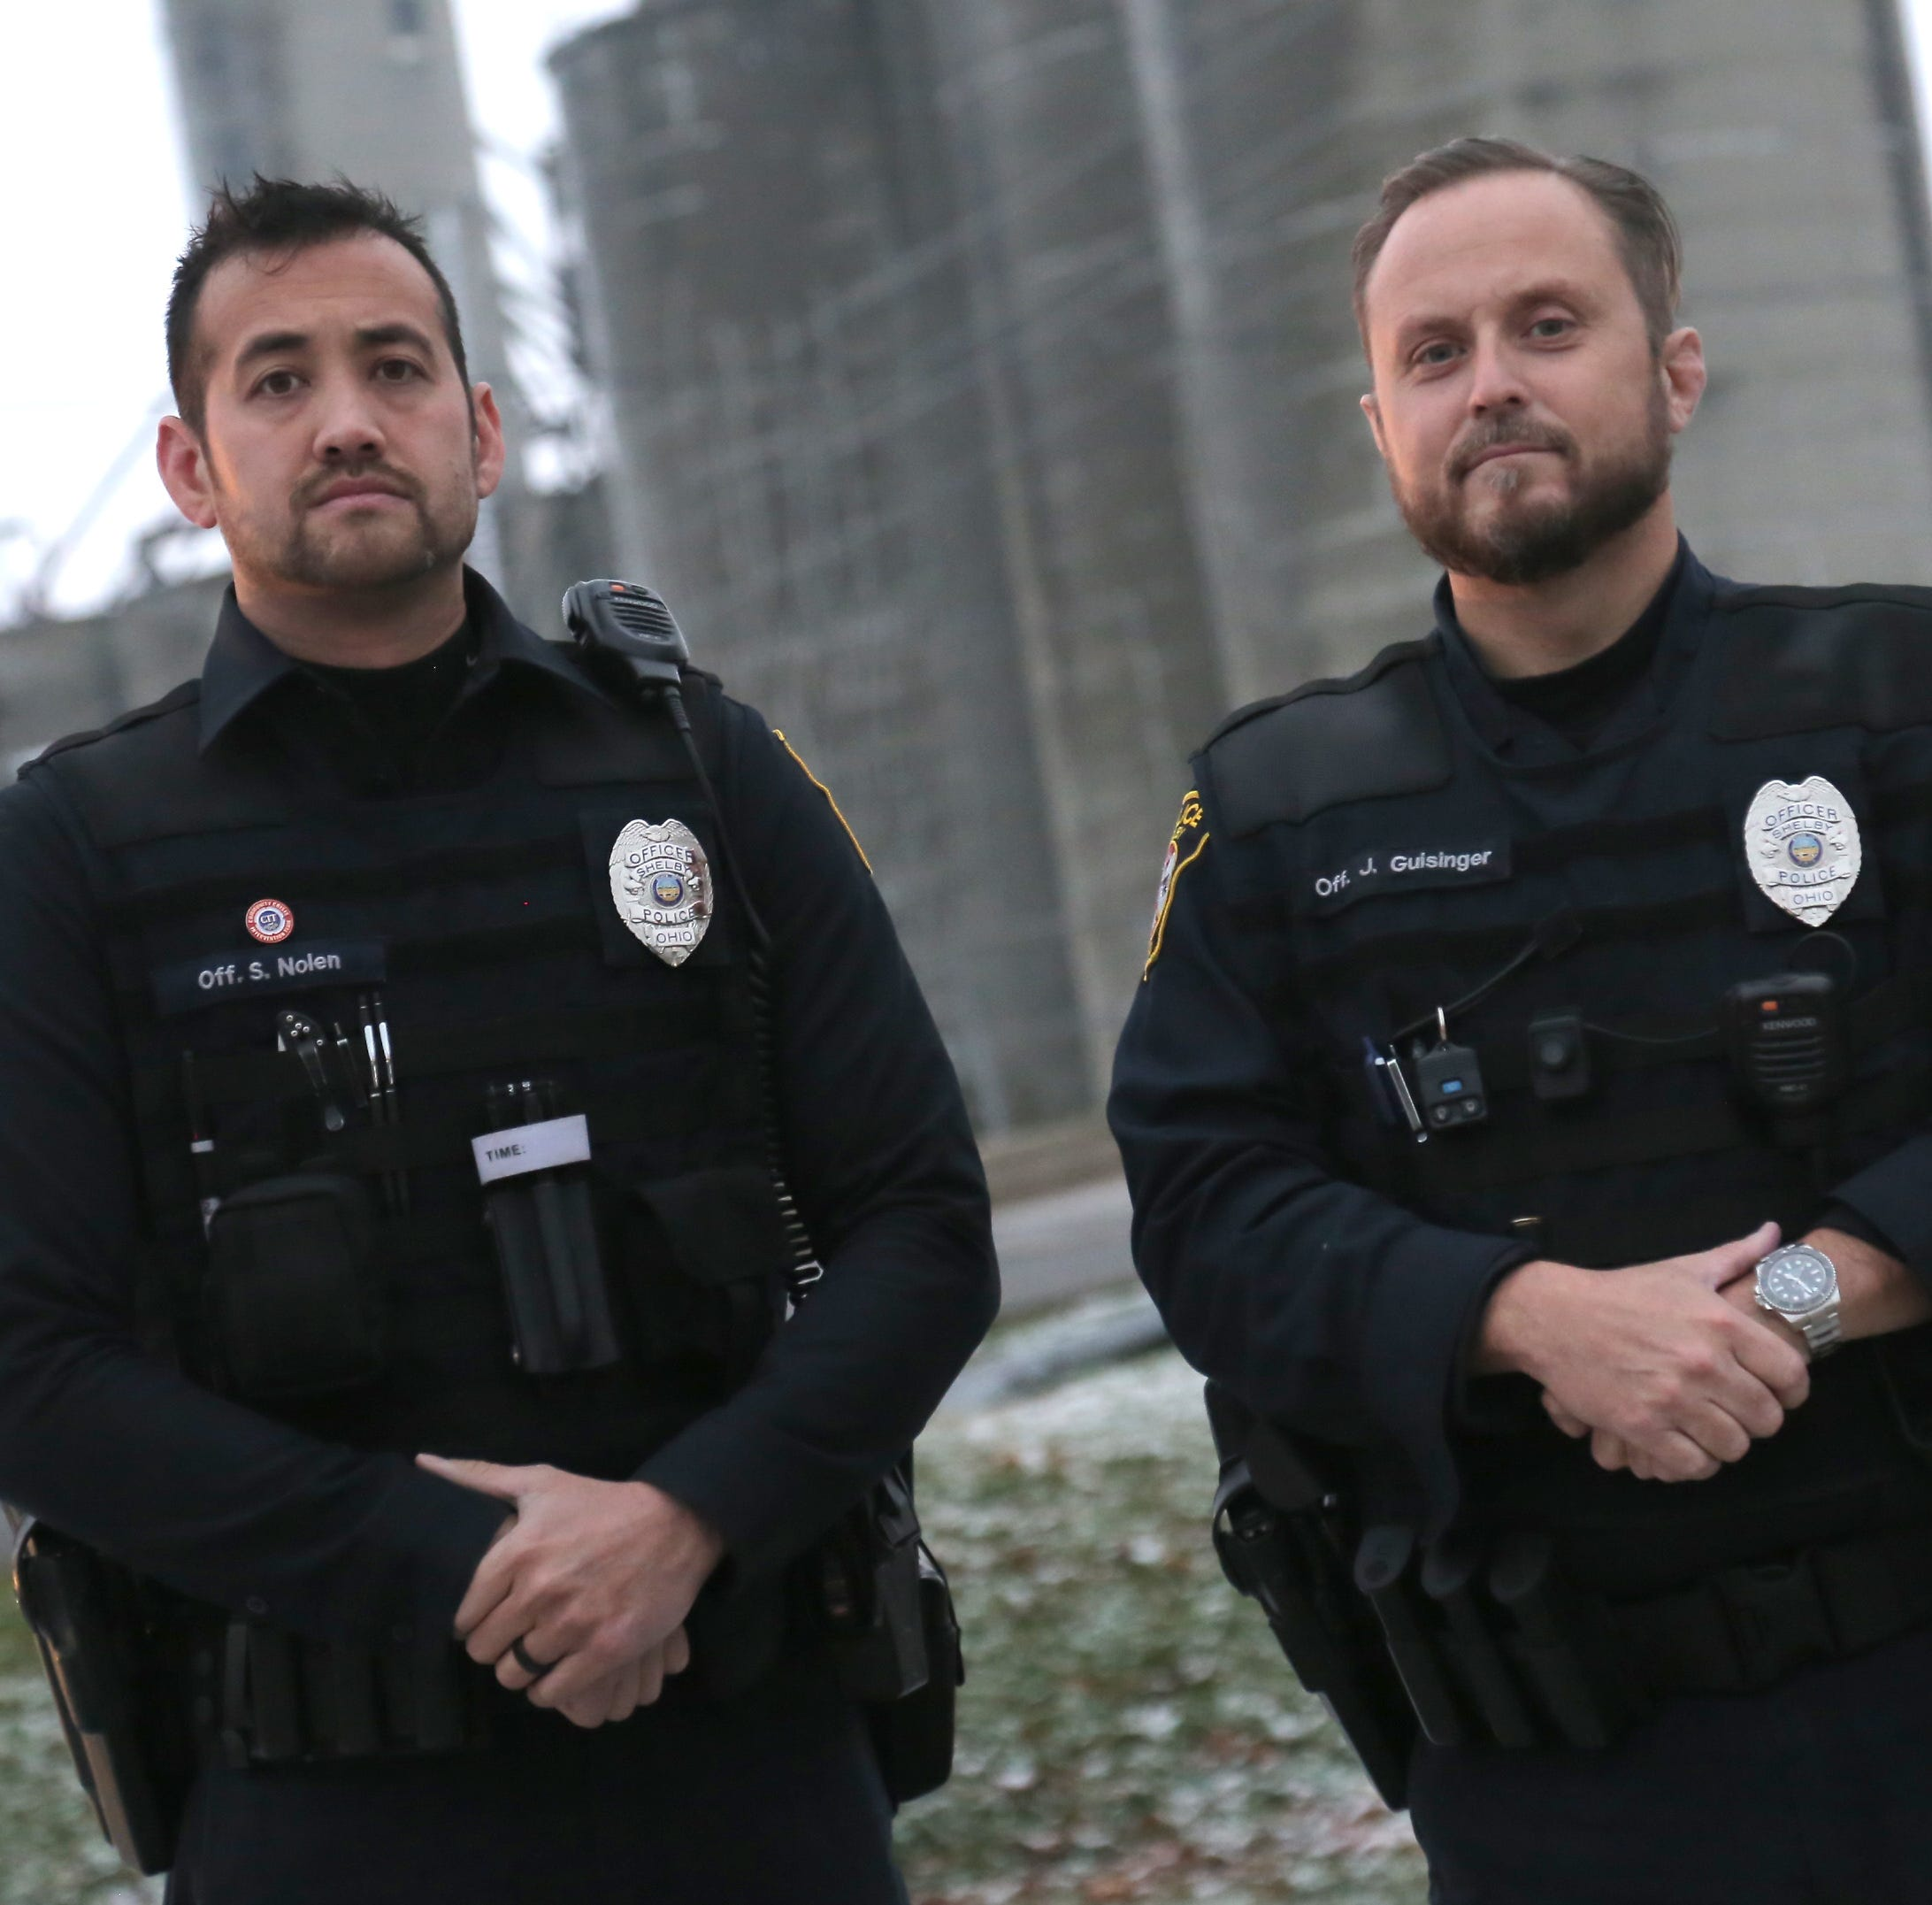 Shelby police officers credited with saving suicidal man's life